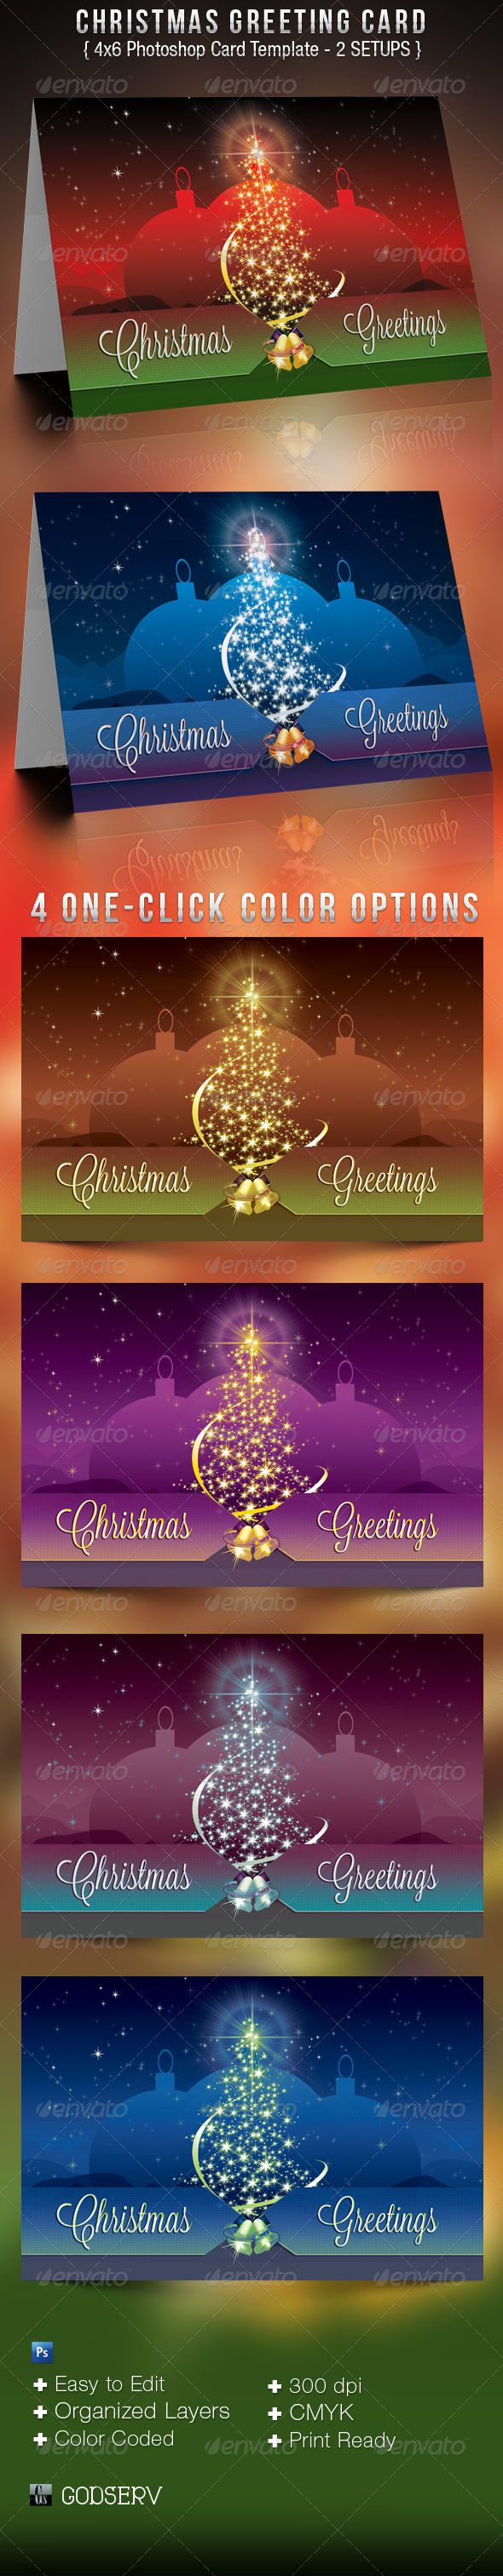 5085 best design template presentation images on pinterest font christmas greeting card template is colorful and great for church office and personal christmas greetings kristyandbryce Image collections